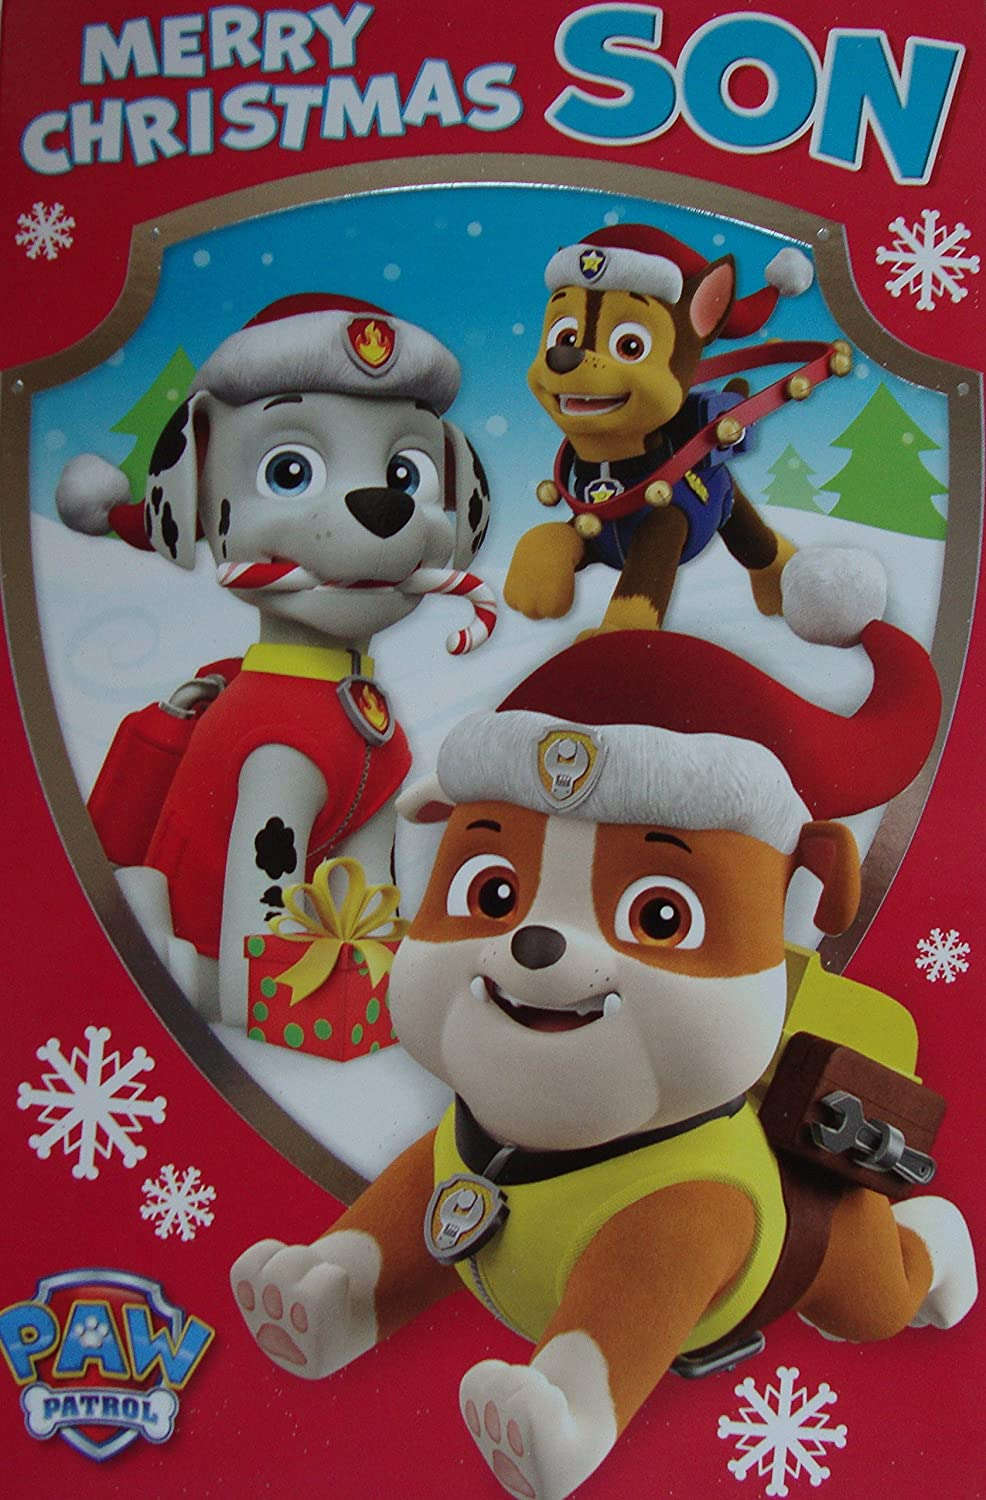 Amazon.com : Paw Patrol Son Christmas Card : Office Products